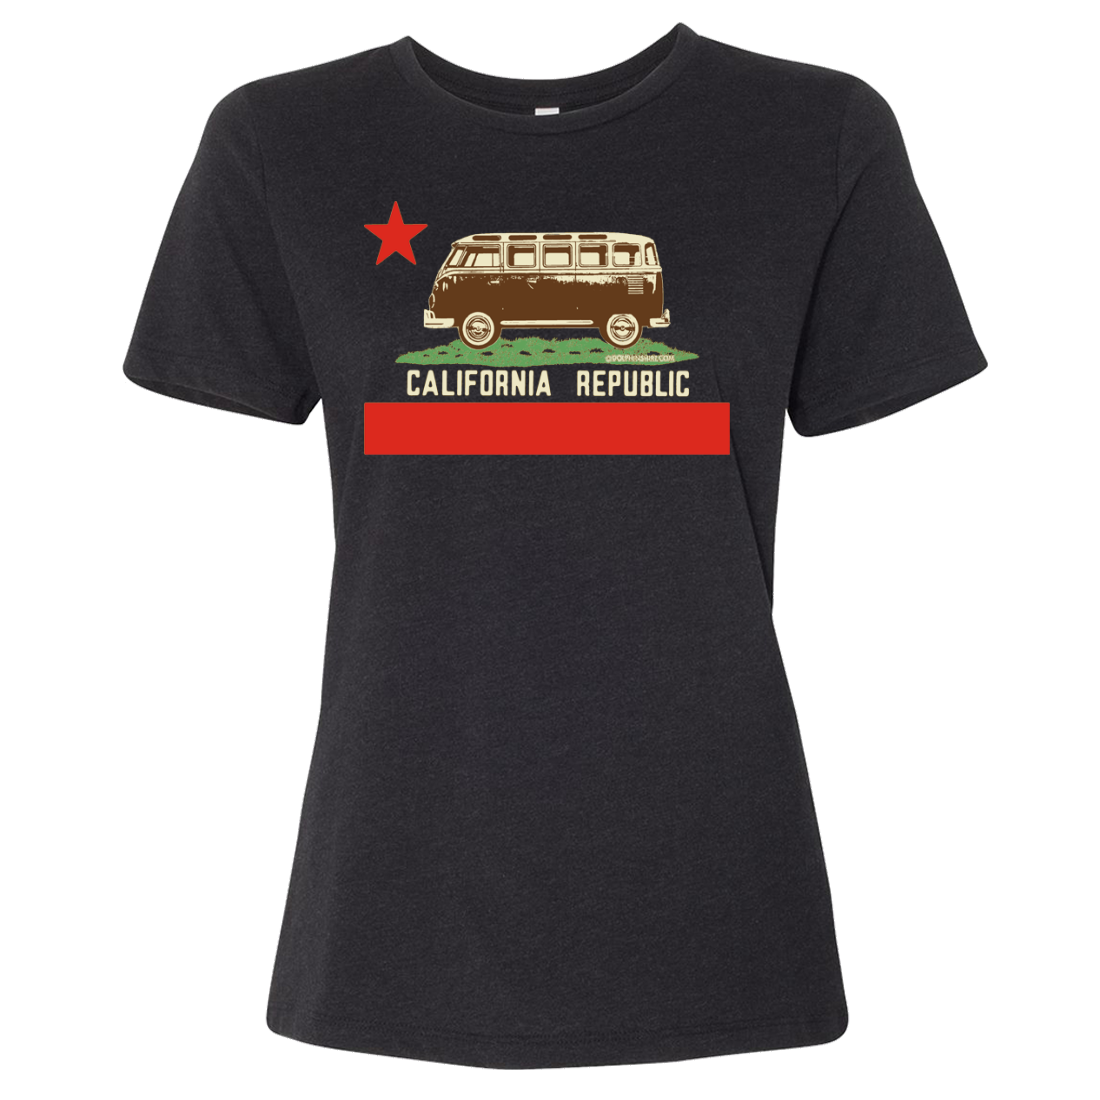 California Republic Vintage Van Women's Relaxed Jersey Tee